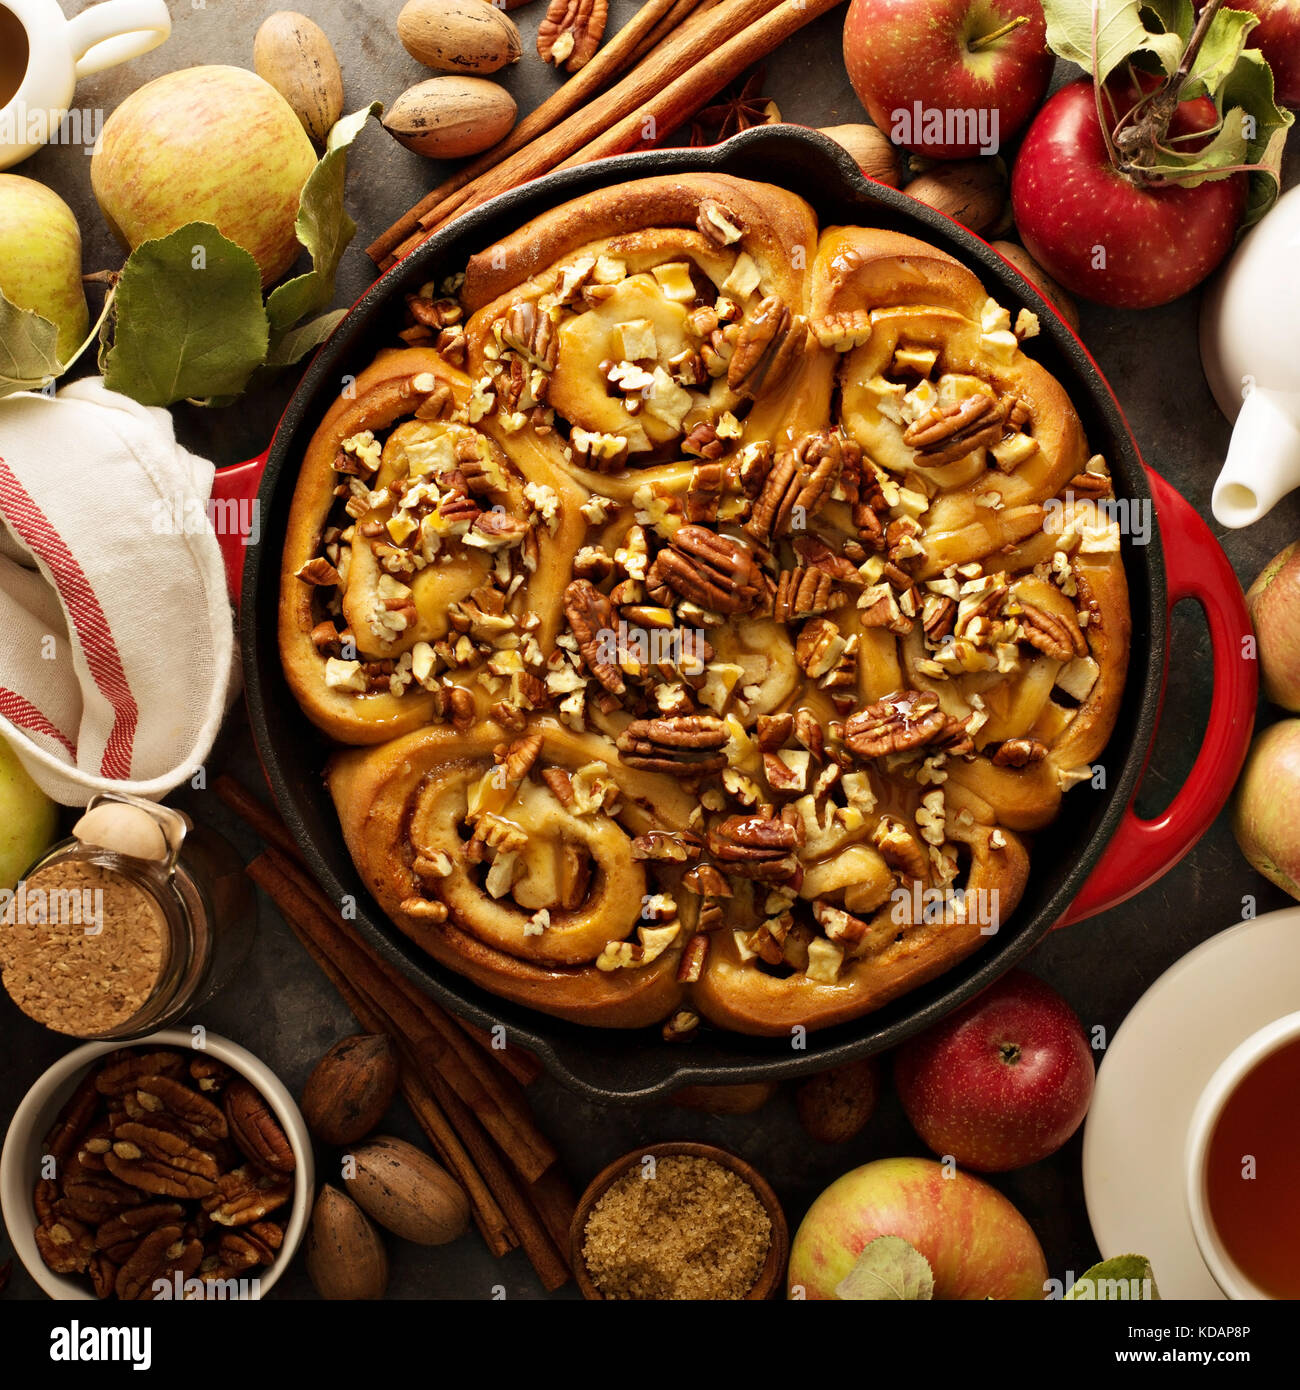 Cinnamon rolls with apples, caramel and pecan - Stock Image